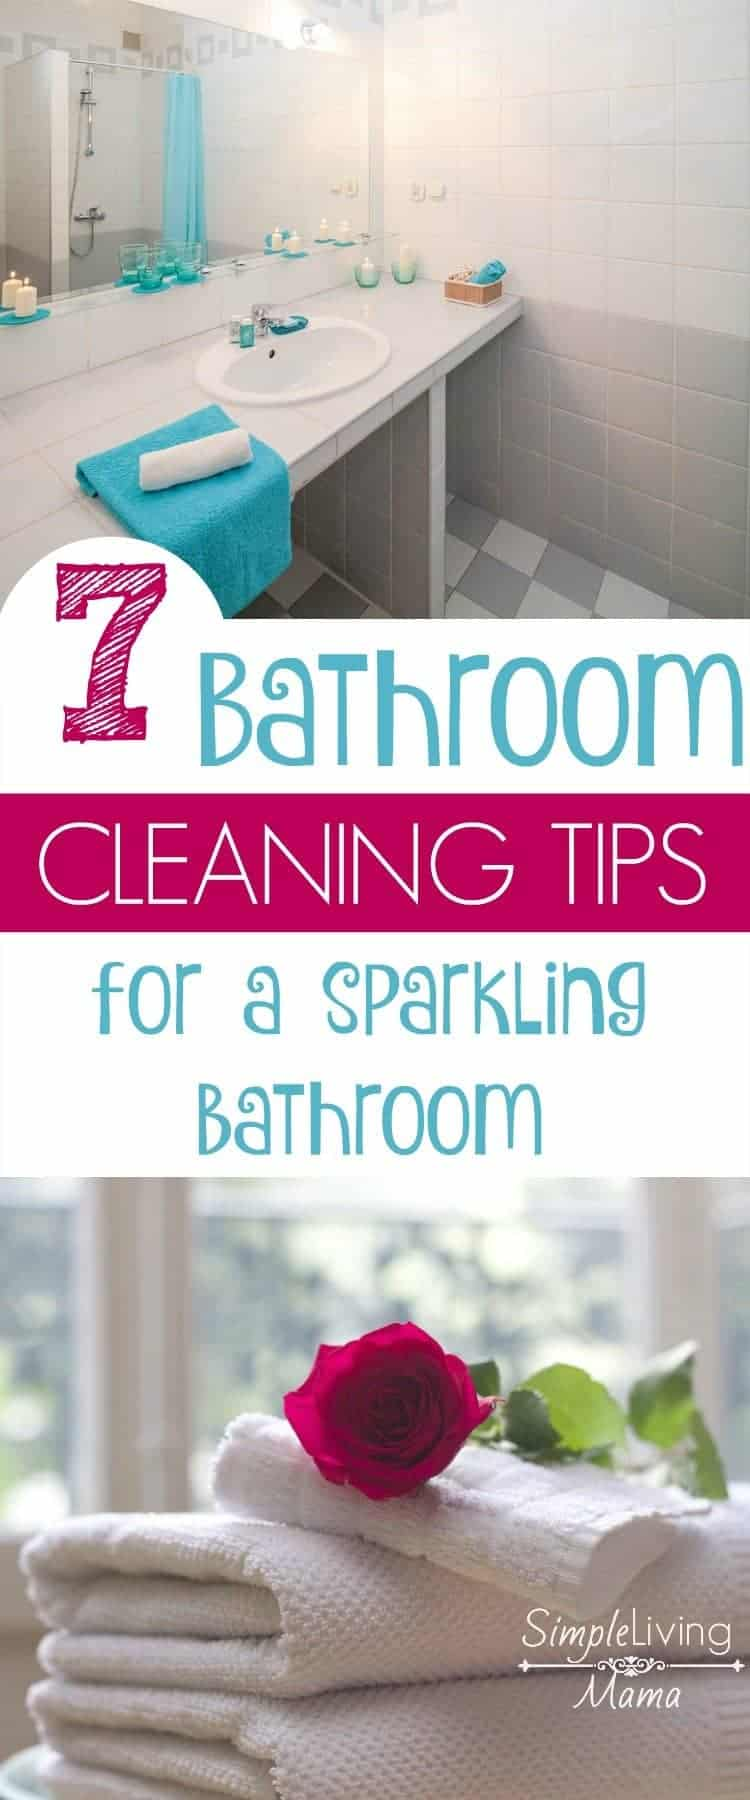 7 Bathroom Cleaning Tips for a Sparkling Bathroom